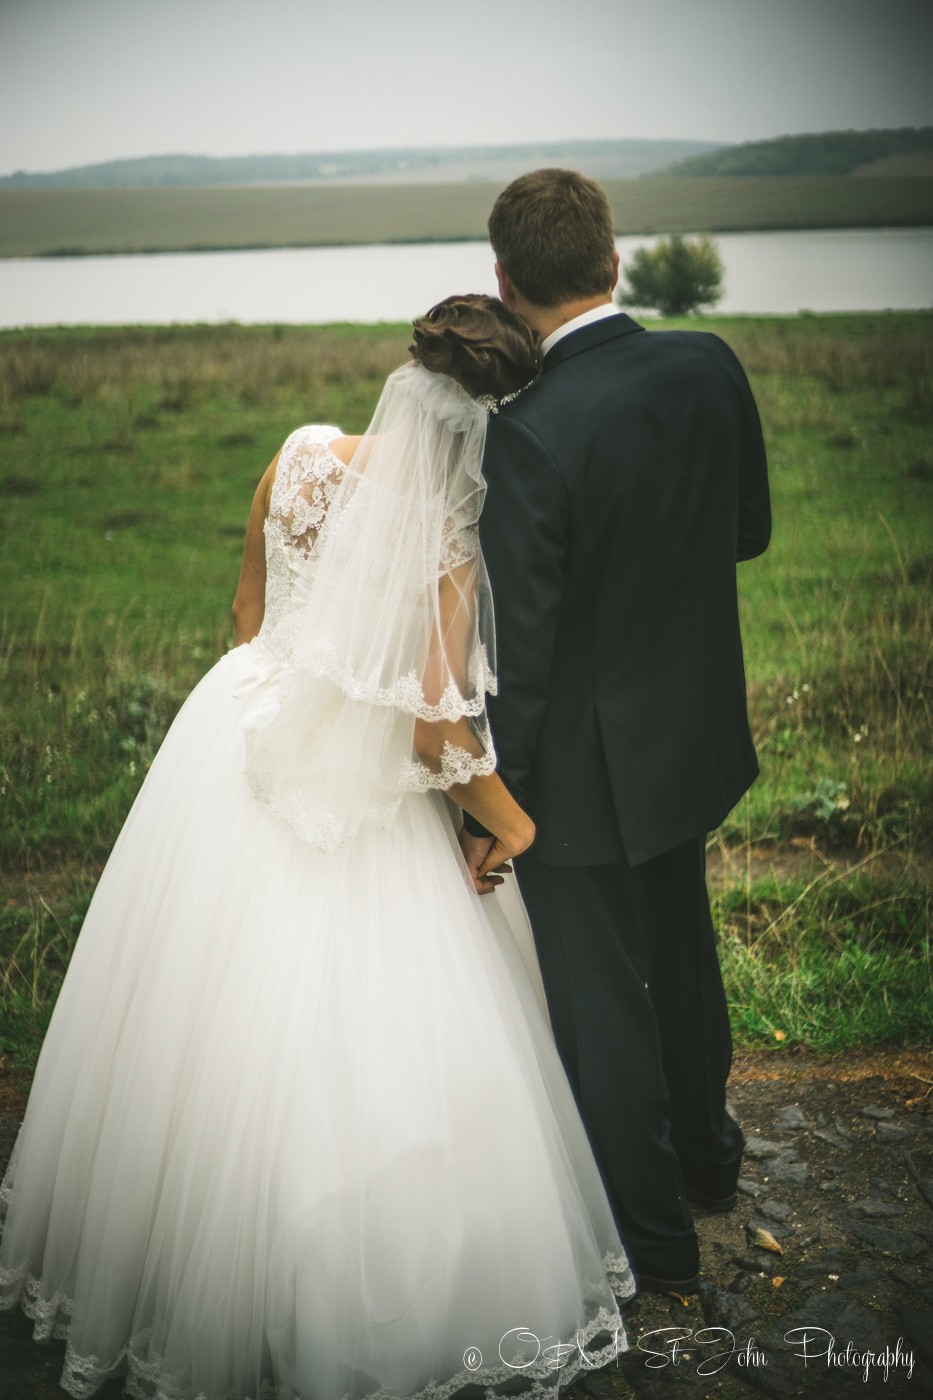 9 Traditions You Will Only See at a Ukrainian Wedding